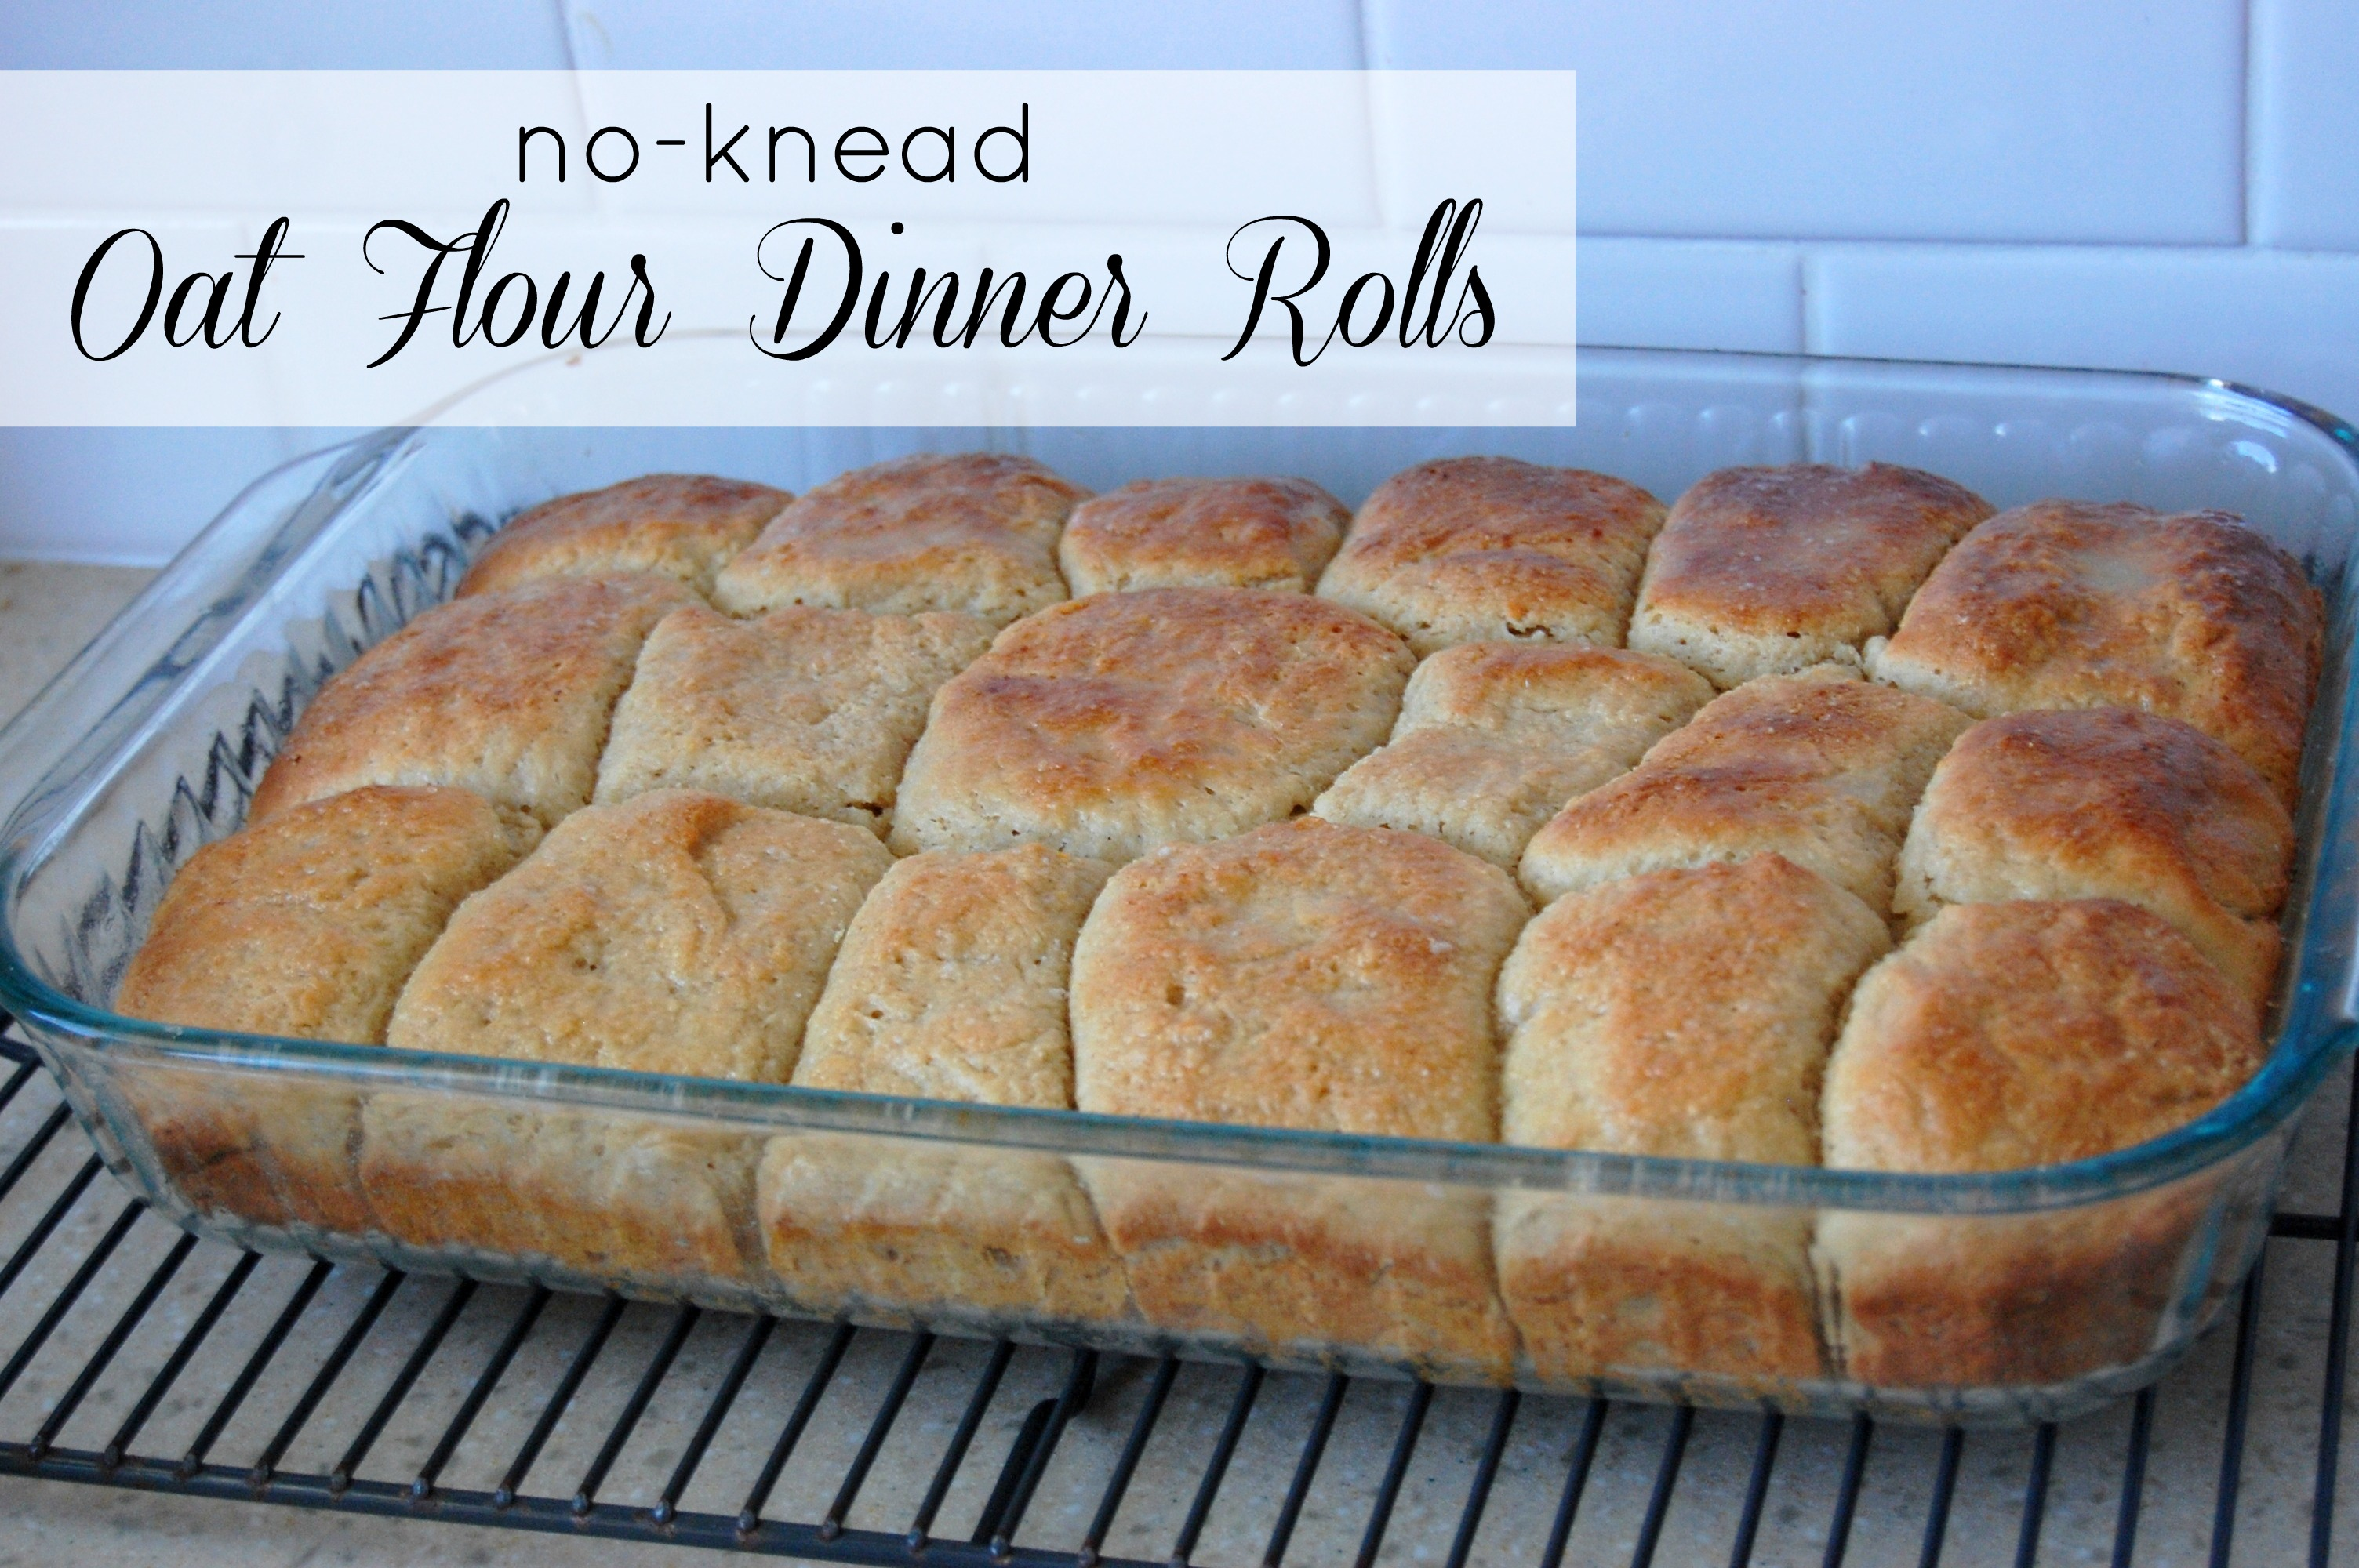 No-Knead Oat Flour Dinner Rolls Recipe